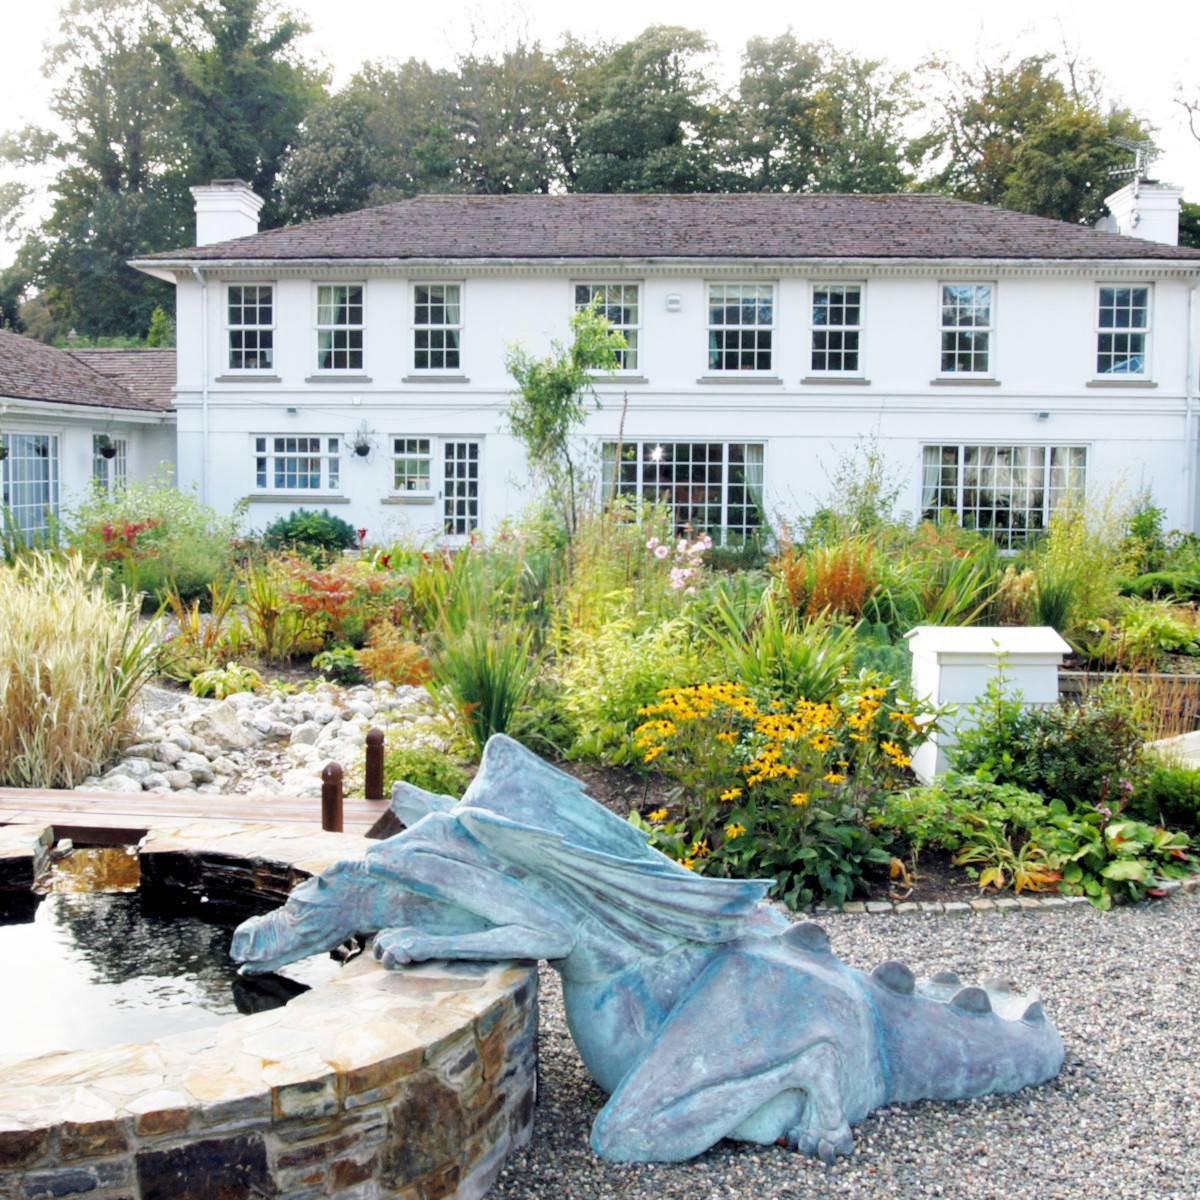 Beaufield House Garden design with dragon and pond